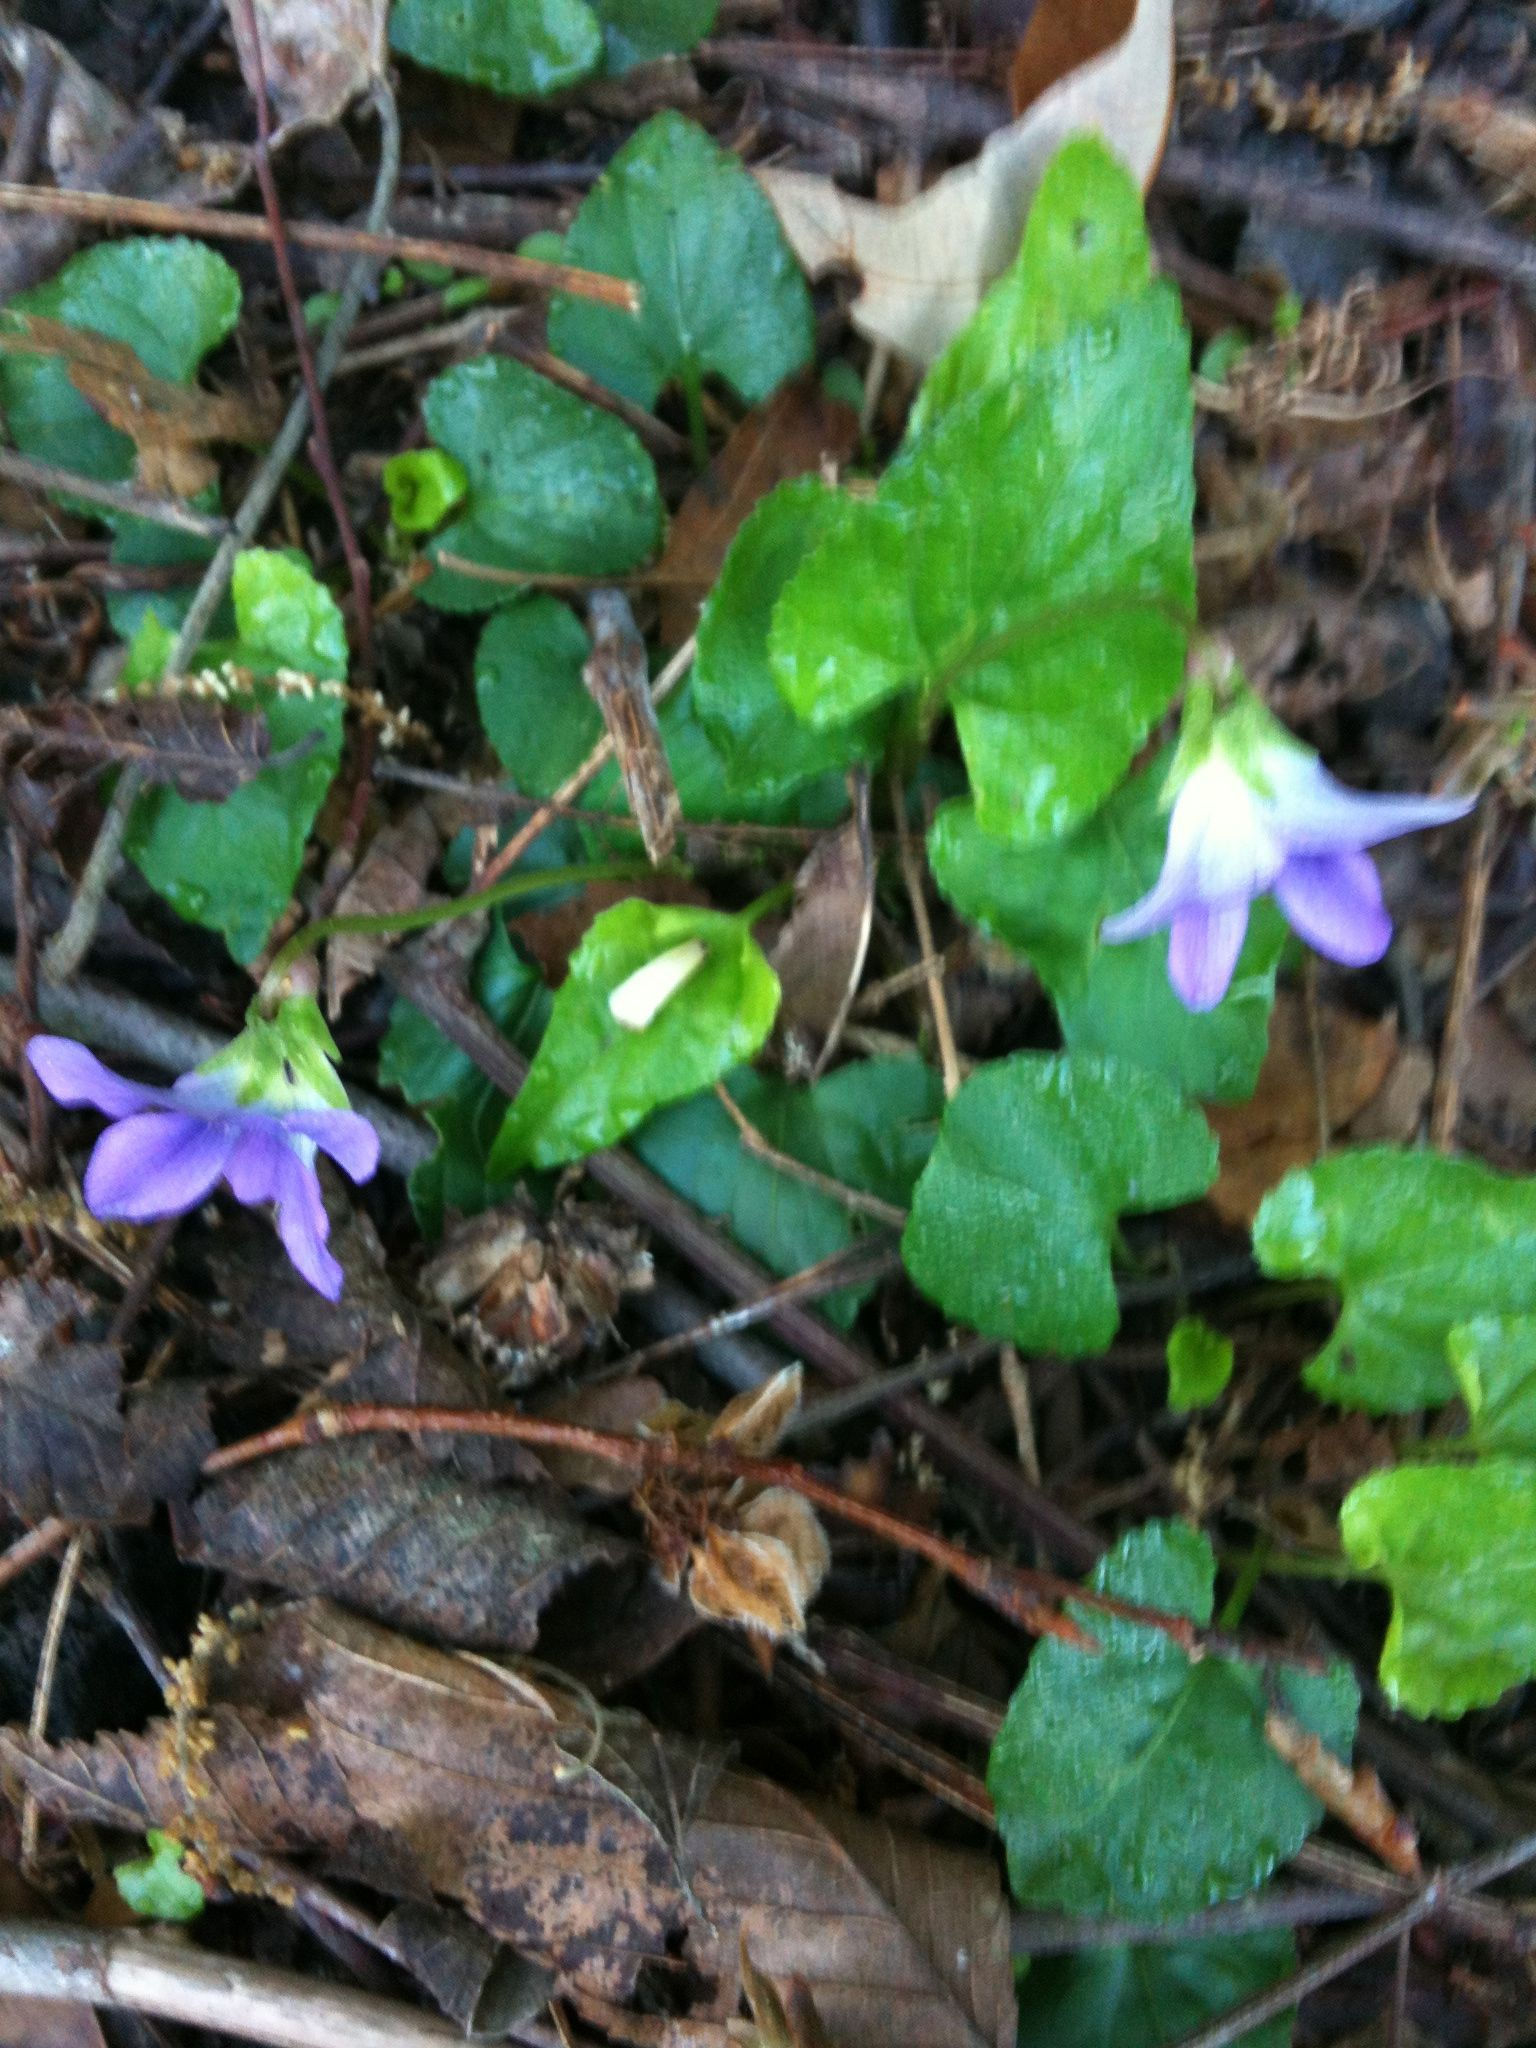 Violets growing in the park. I'm new to Little Rock and